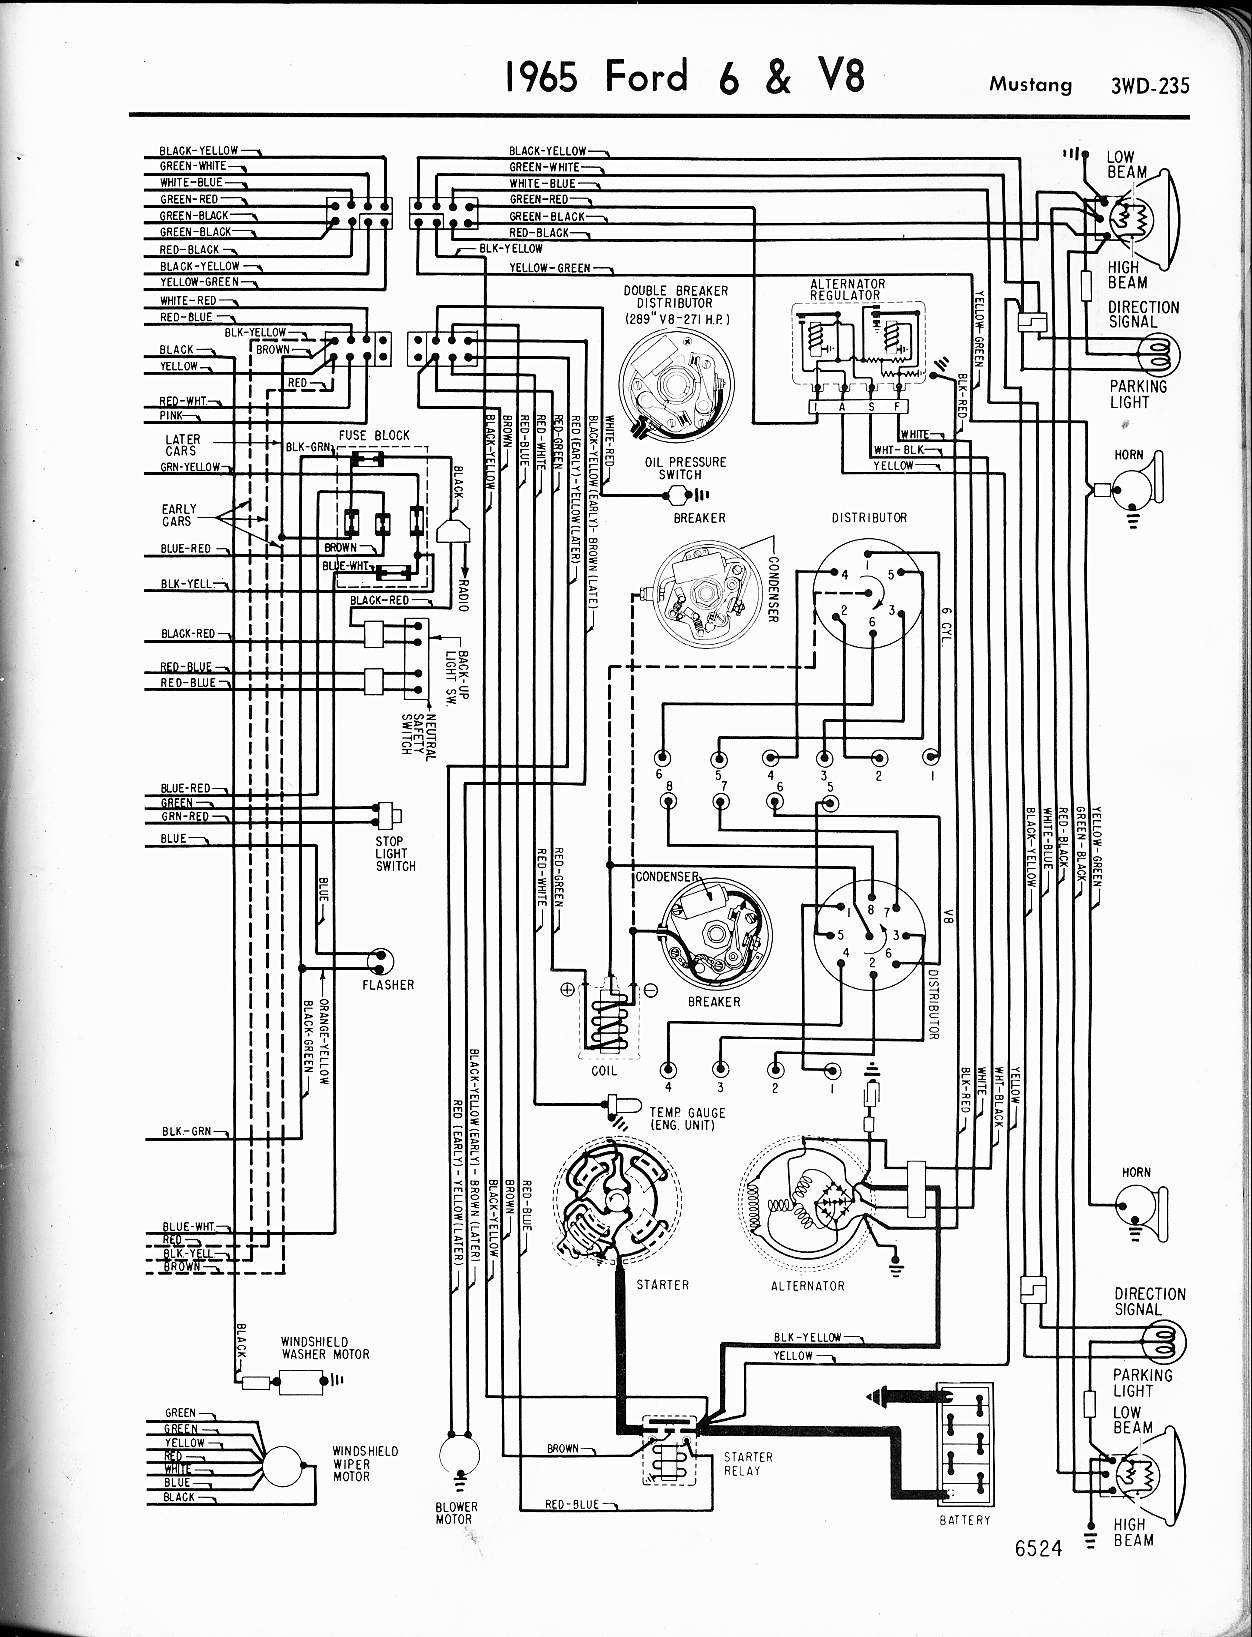 1965_mustang_wiring_2 ford diagrams 1966 f250 wiring harness at fashall.co